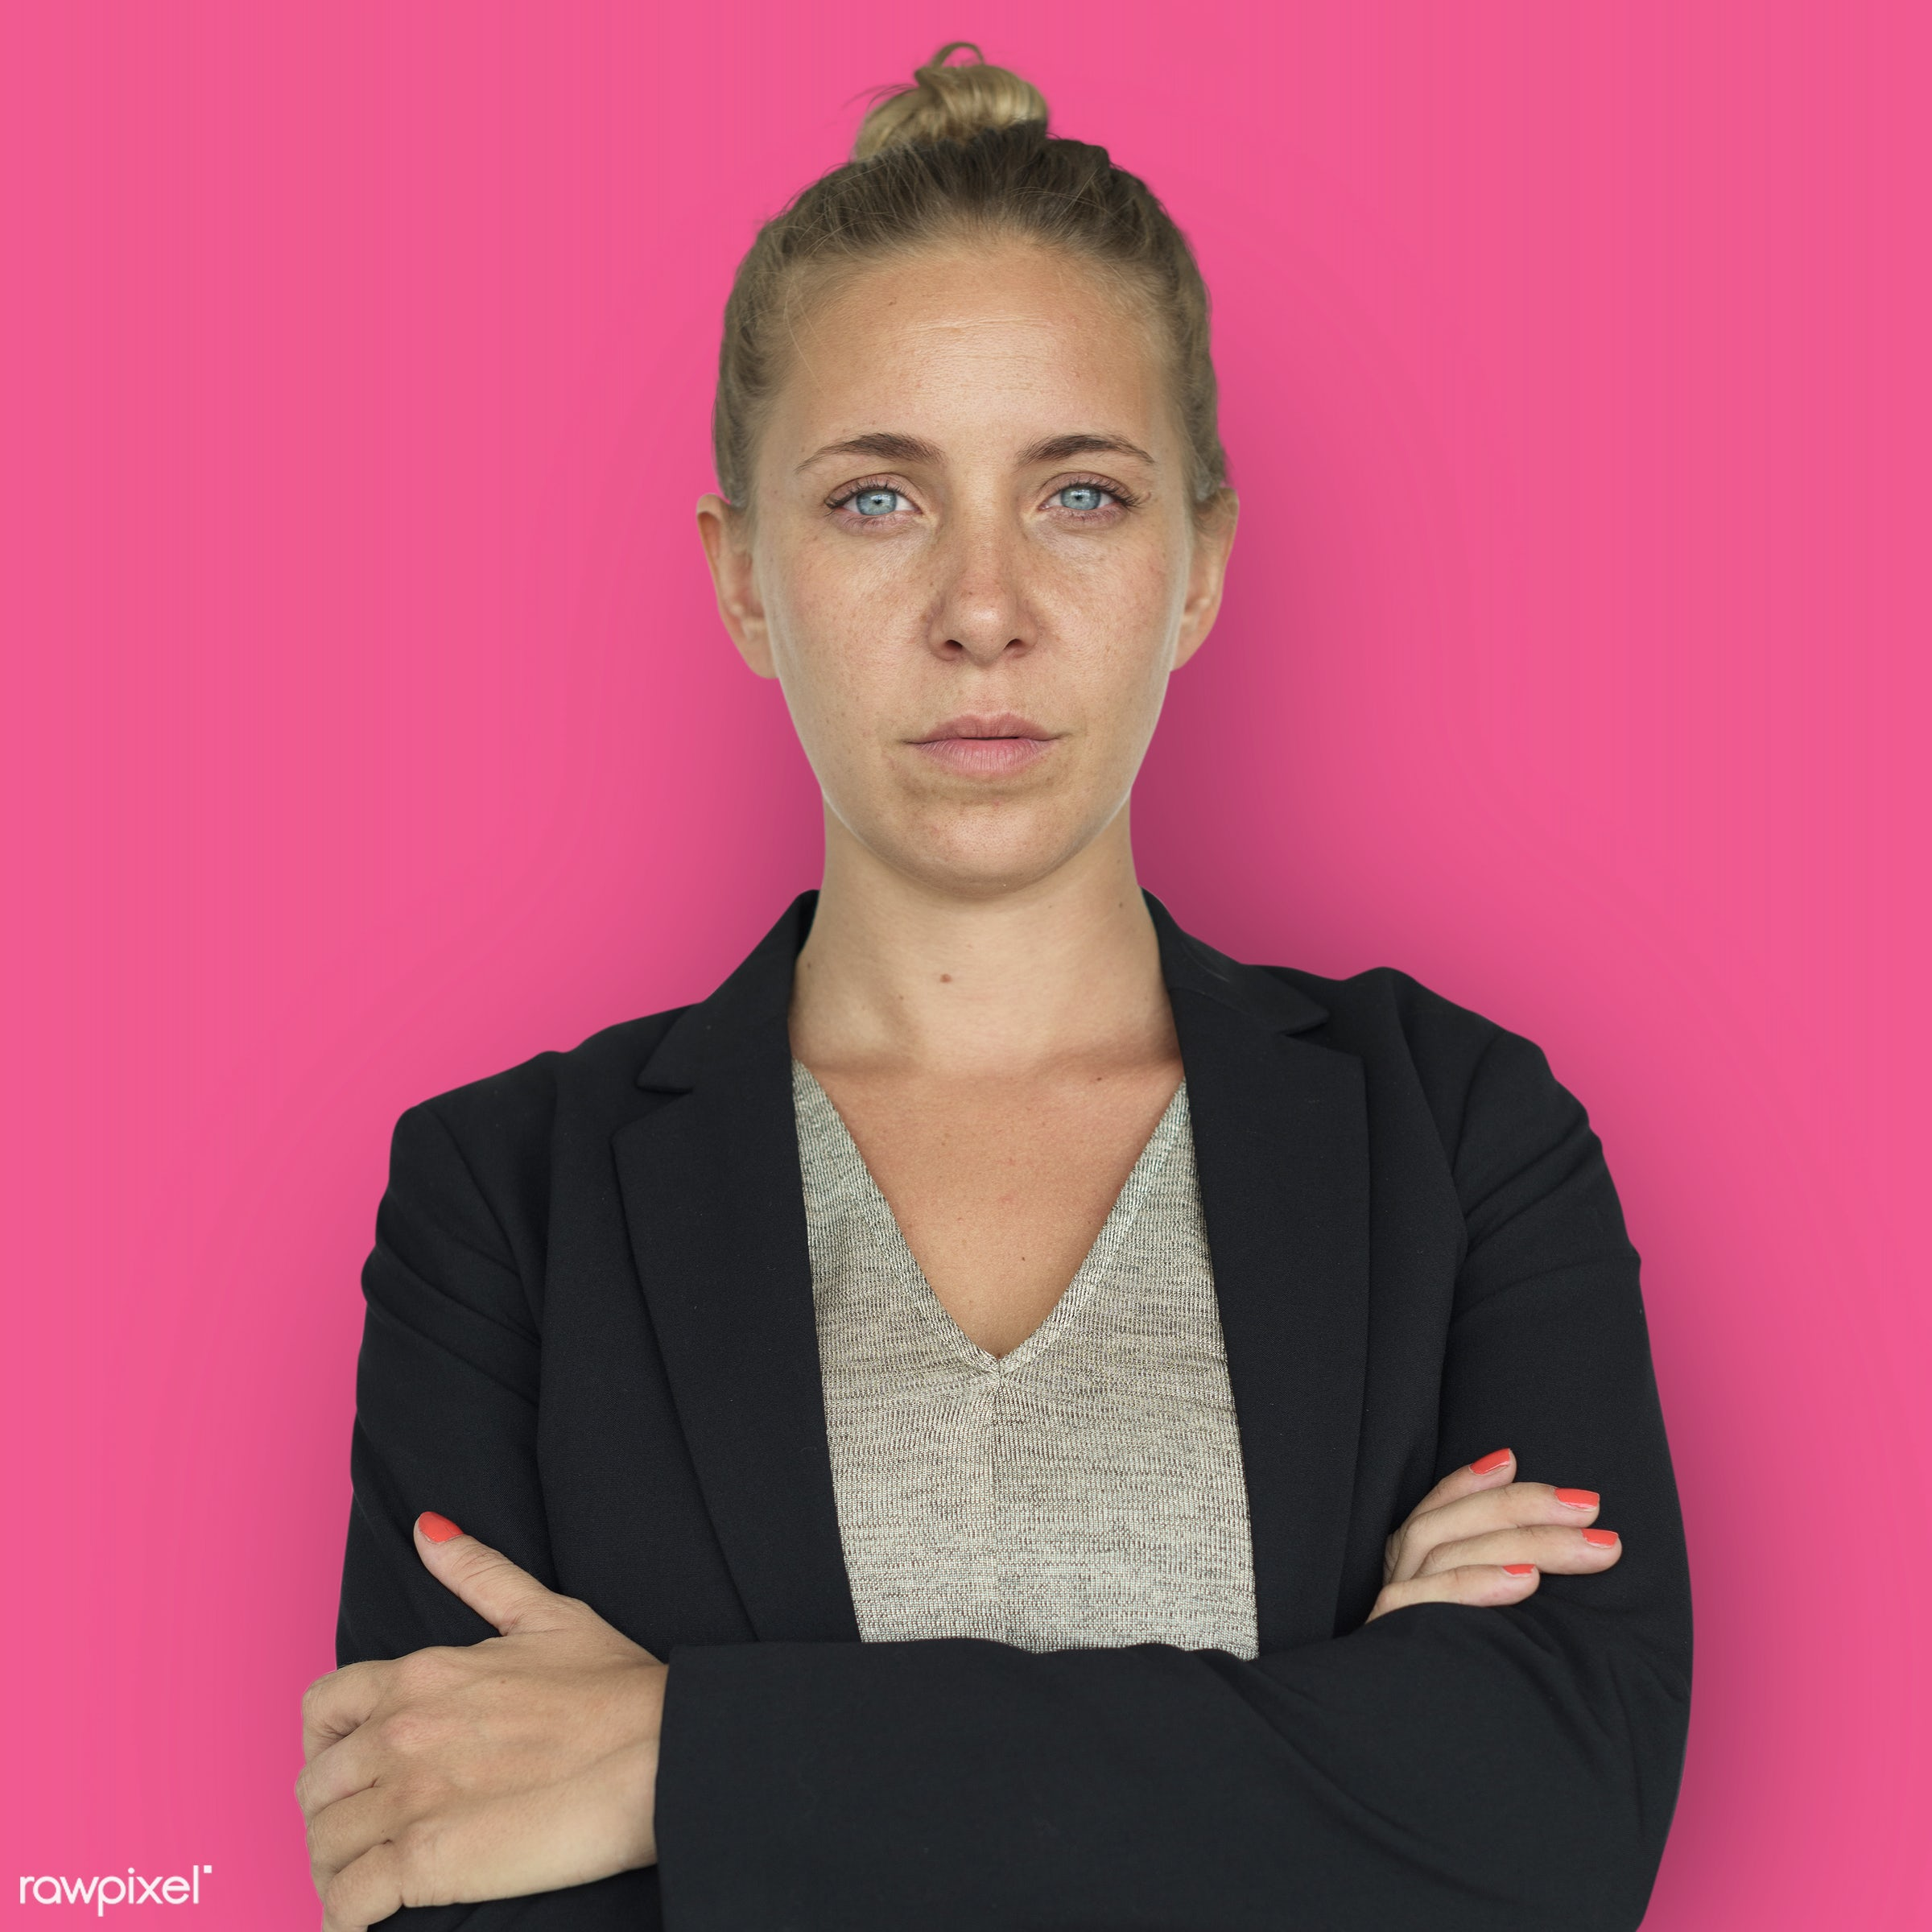 expression, intelligent, studio, person, vibrant, people, caucasian, woman, pink, serious, isolated, businesswoman, portrait...